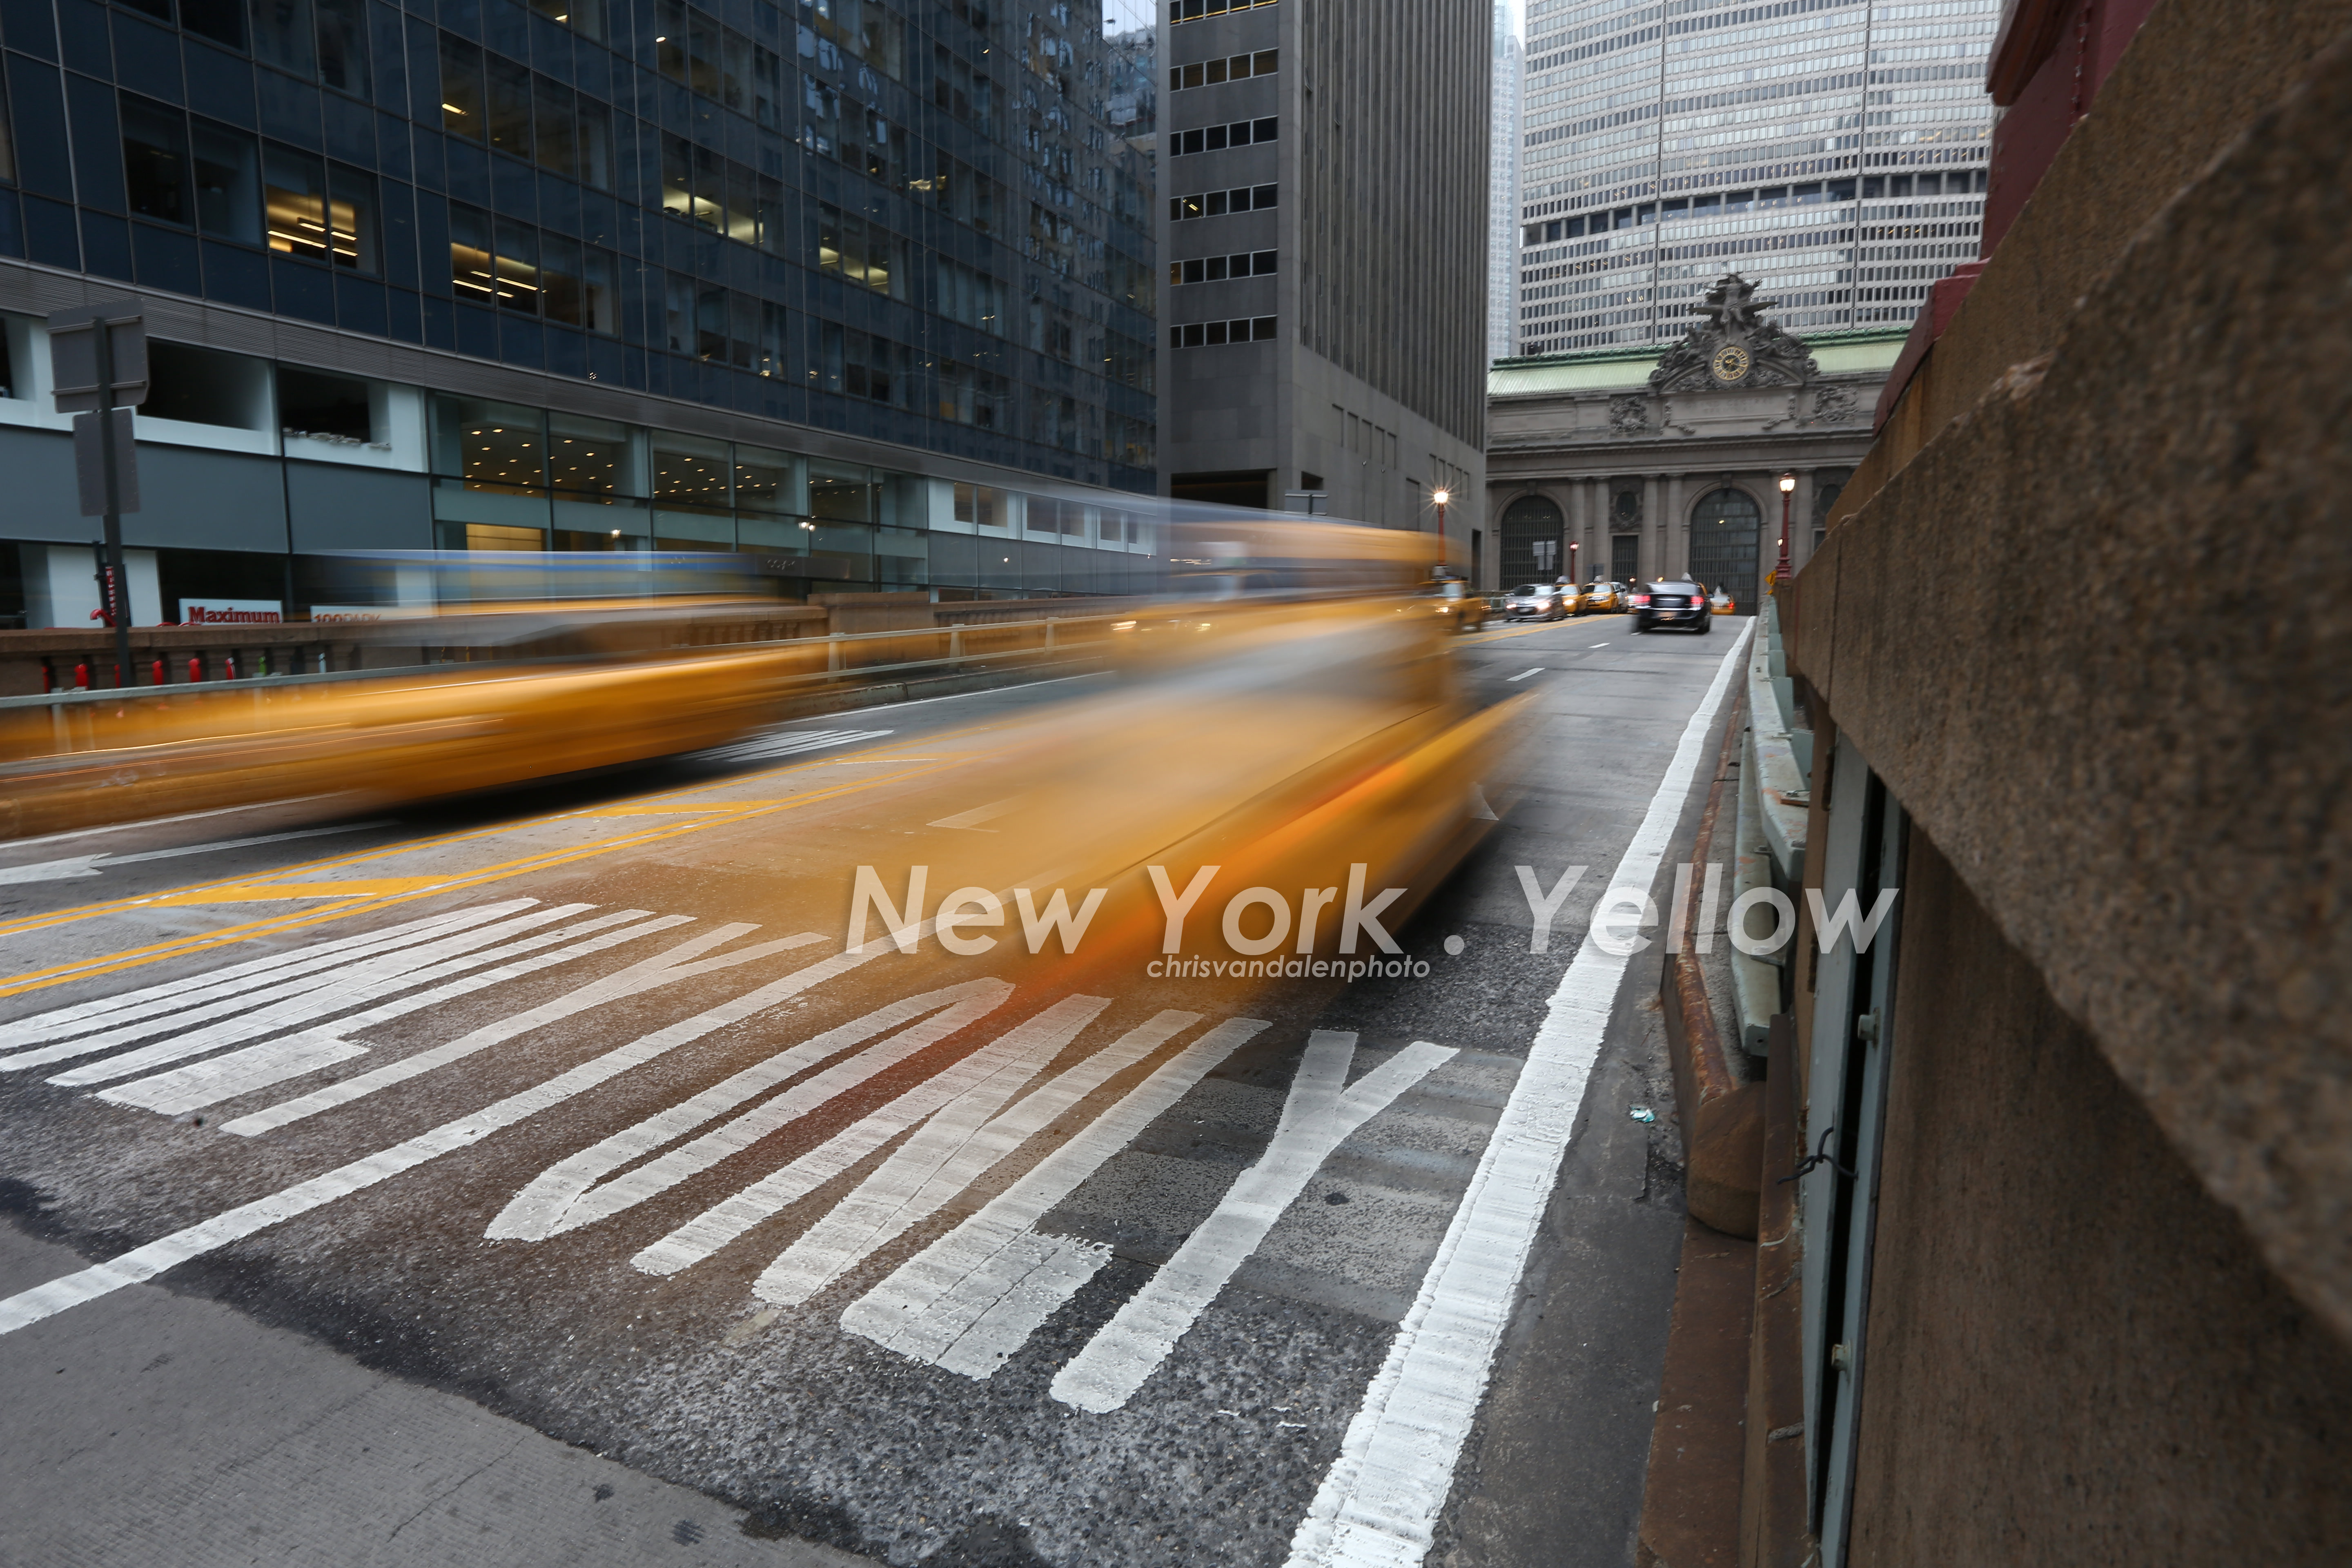 New York, Movement, yellow cab